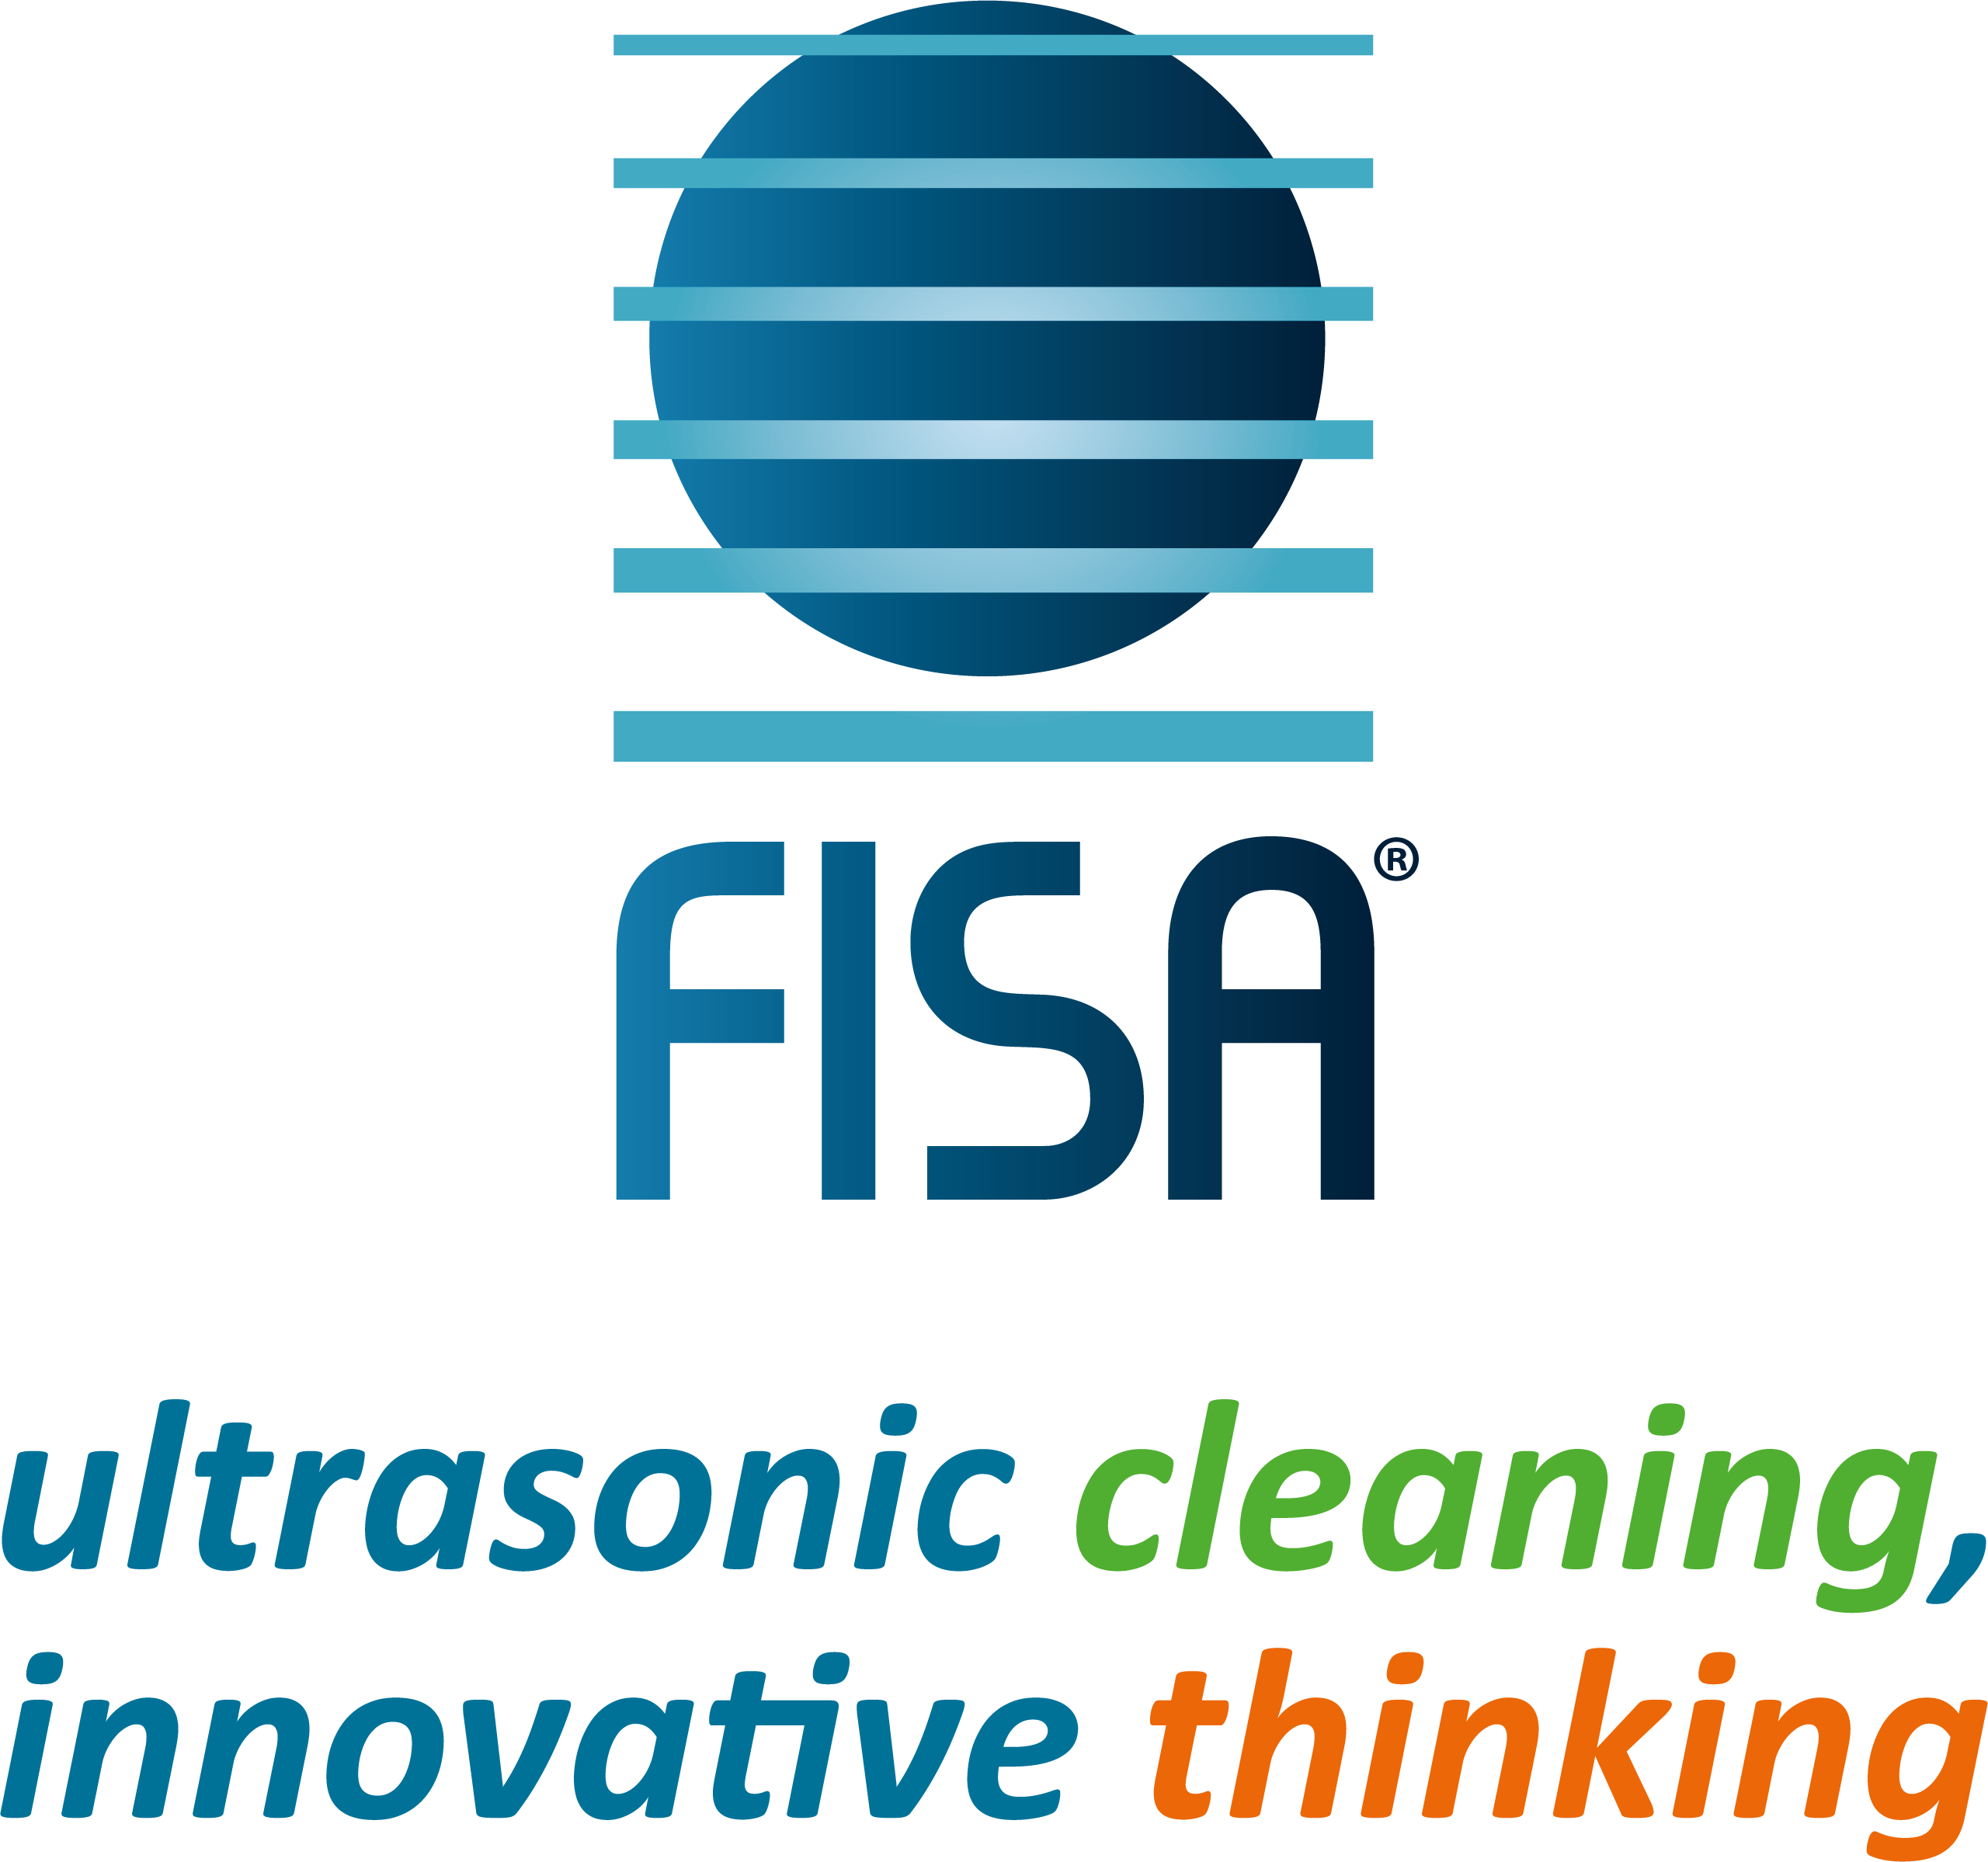 Logo FISA - NETTOYAGE ULTRASONS - MACHINES & PROCESS